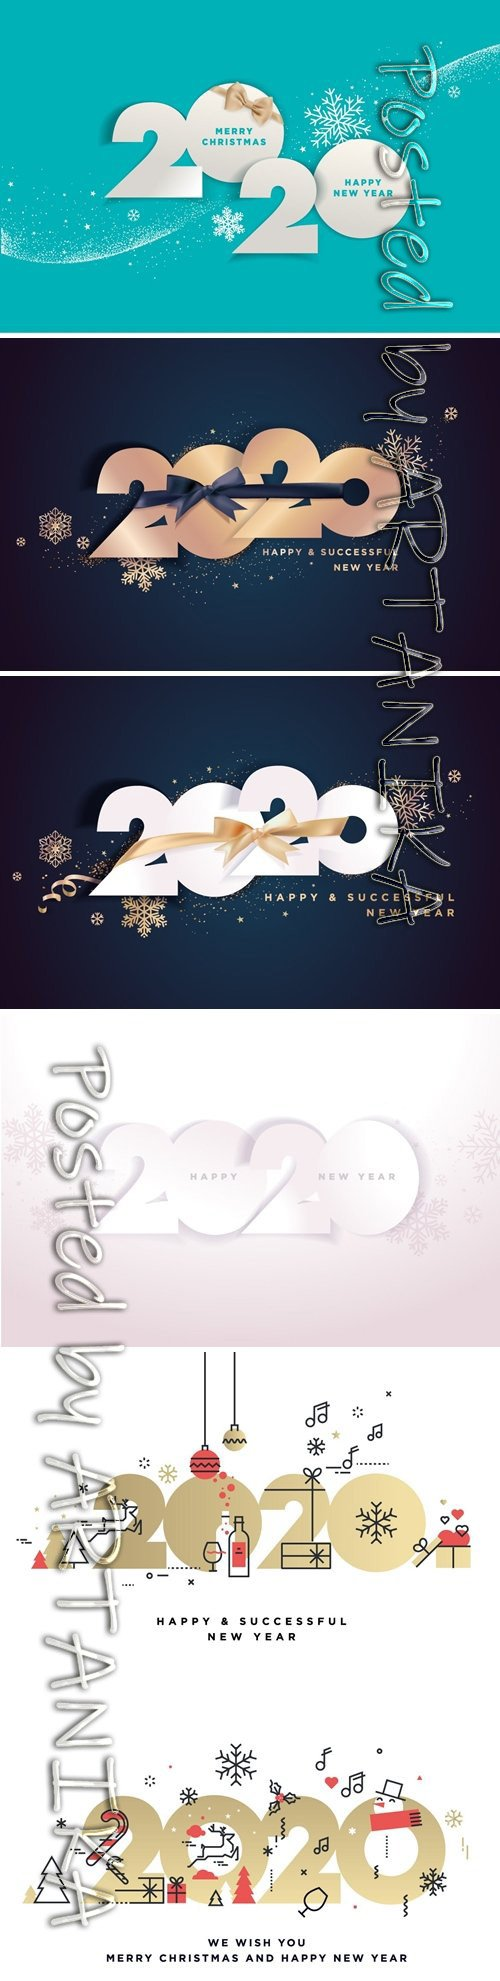 Happy New Year 2020 business greeting card